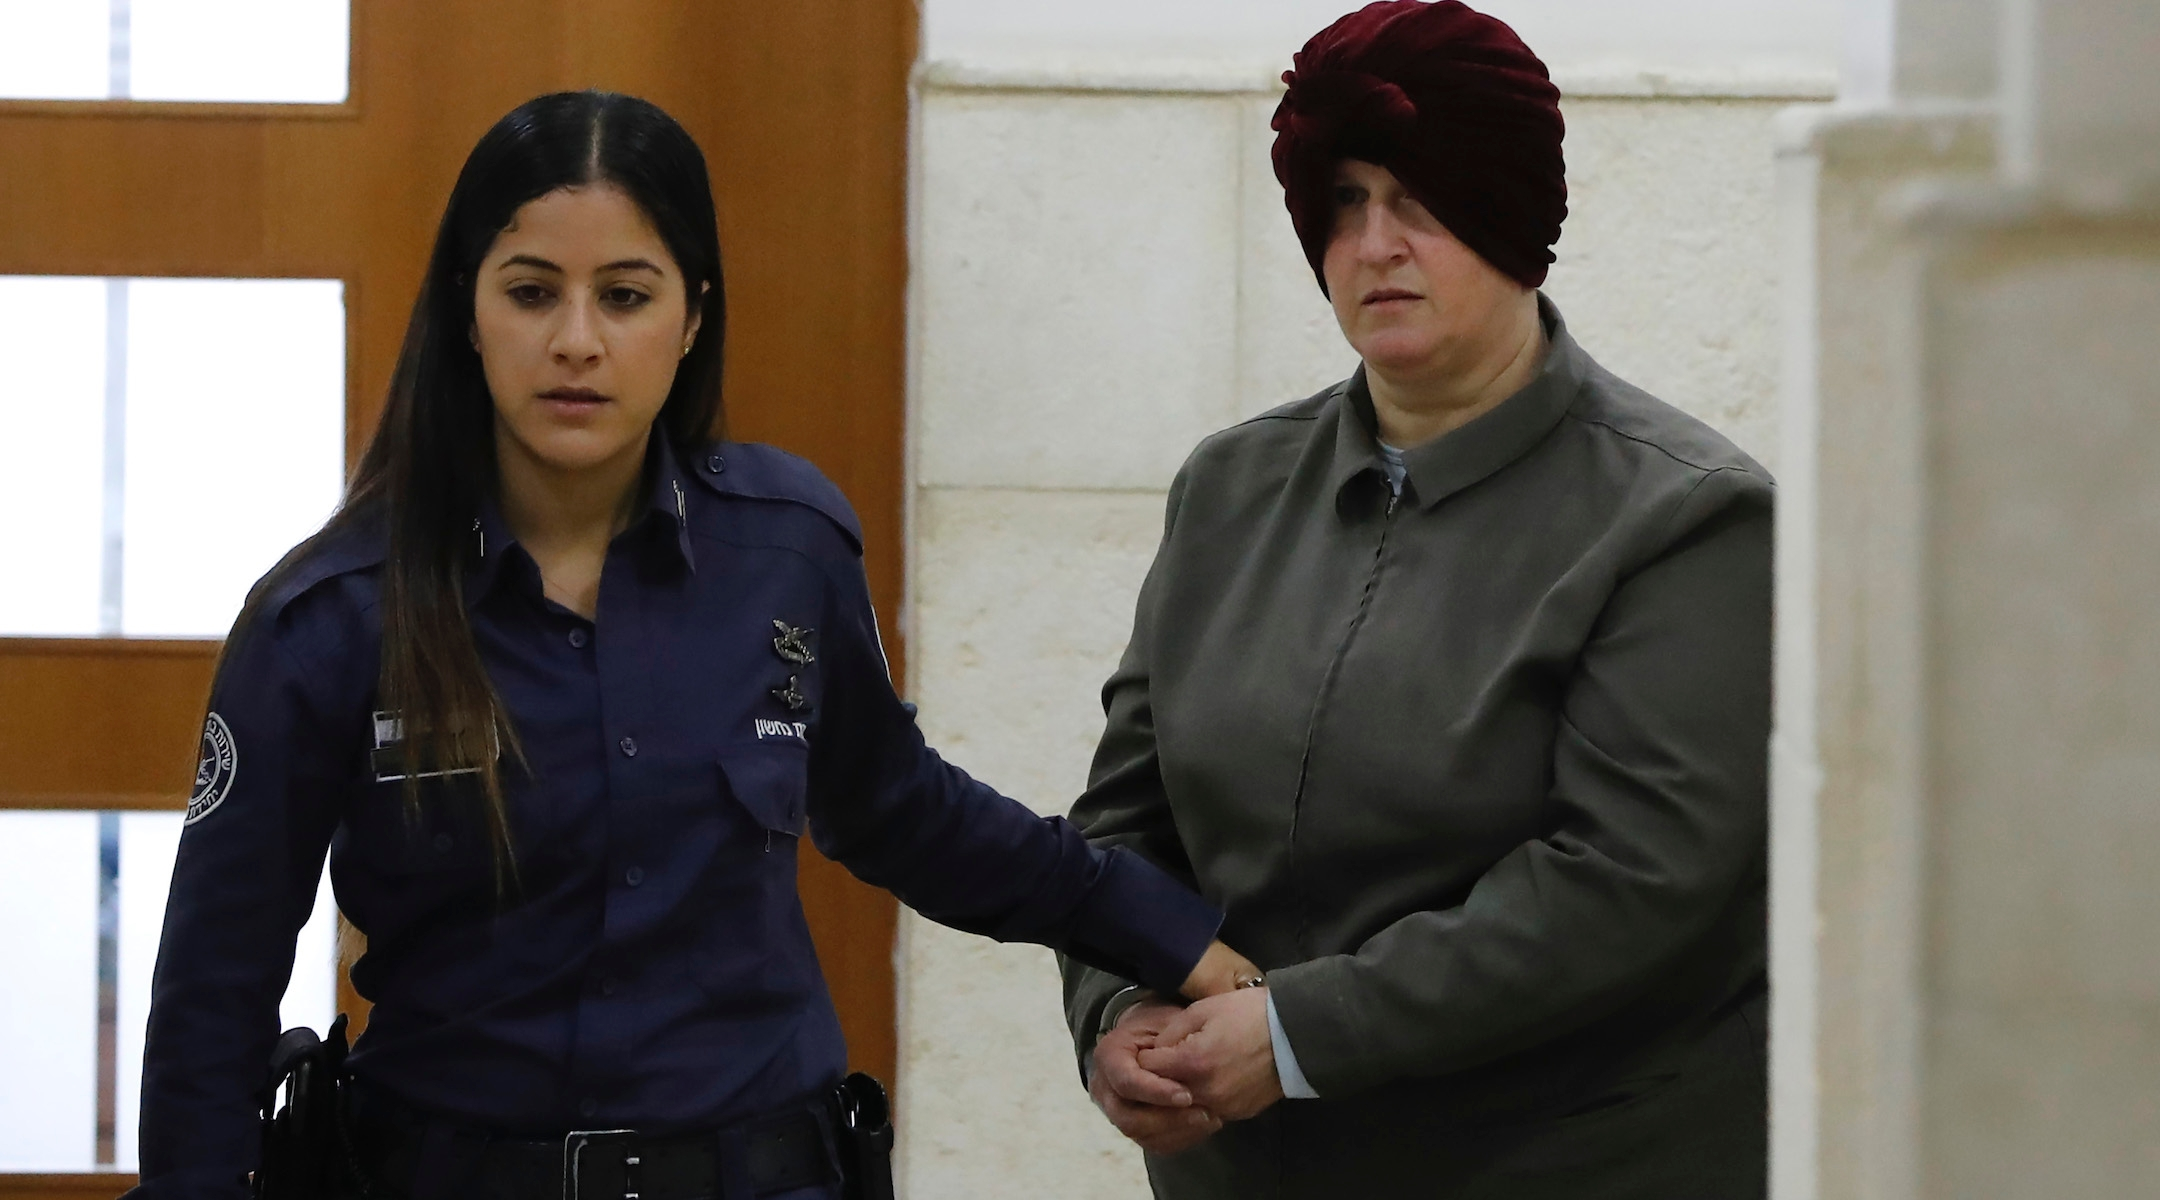 Israeli court rules accused child sex offender Malka Leifer is mentally fit for extradition to...